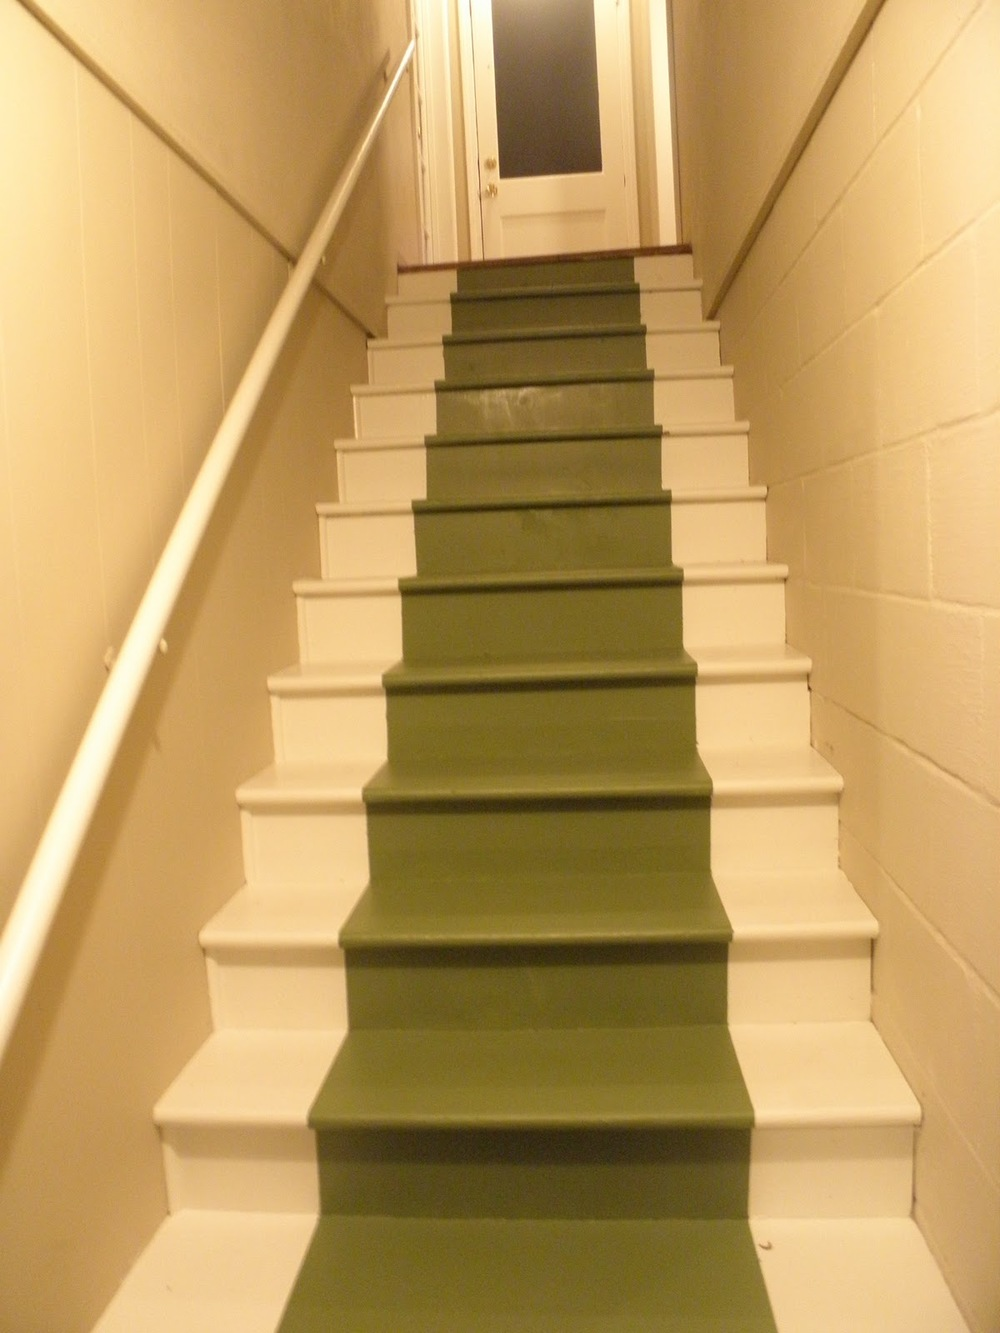 They Can Range From Simple Utility Stairs To Fancy Decorative Staircases. A  Major Issue Facing The Stair Builder For Stair Contractors Is The  Unpredictable ...